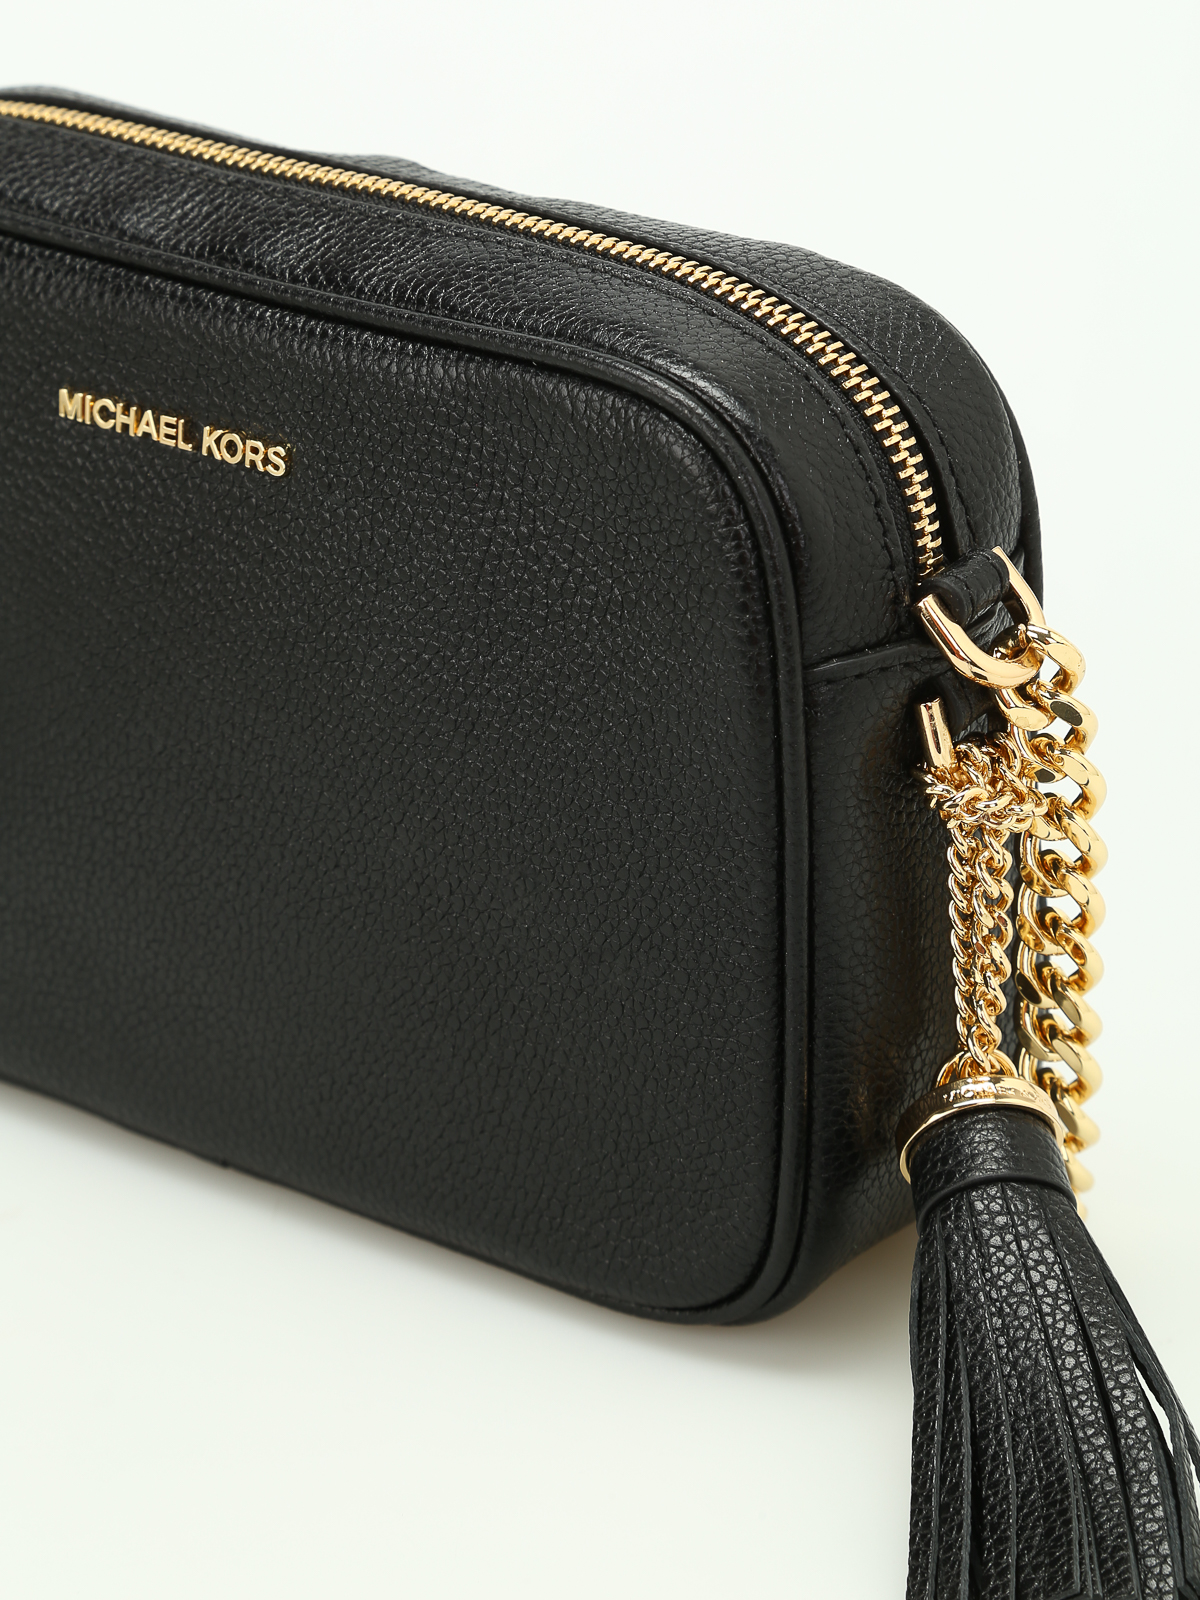 f5dc8760c1 Michael Kors - Ginny leather camera bag - cross body bags ...